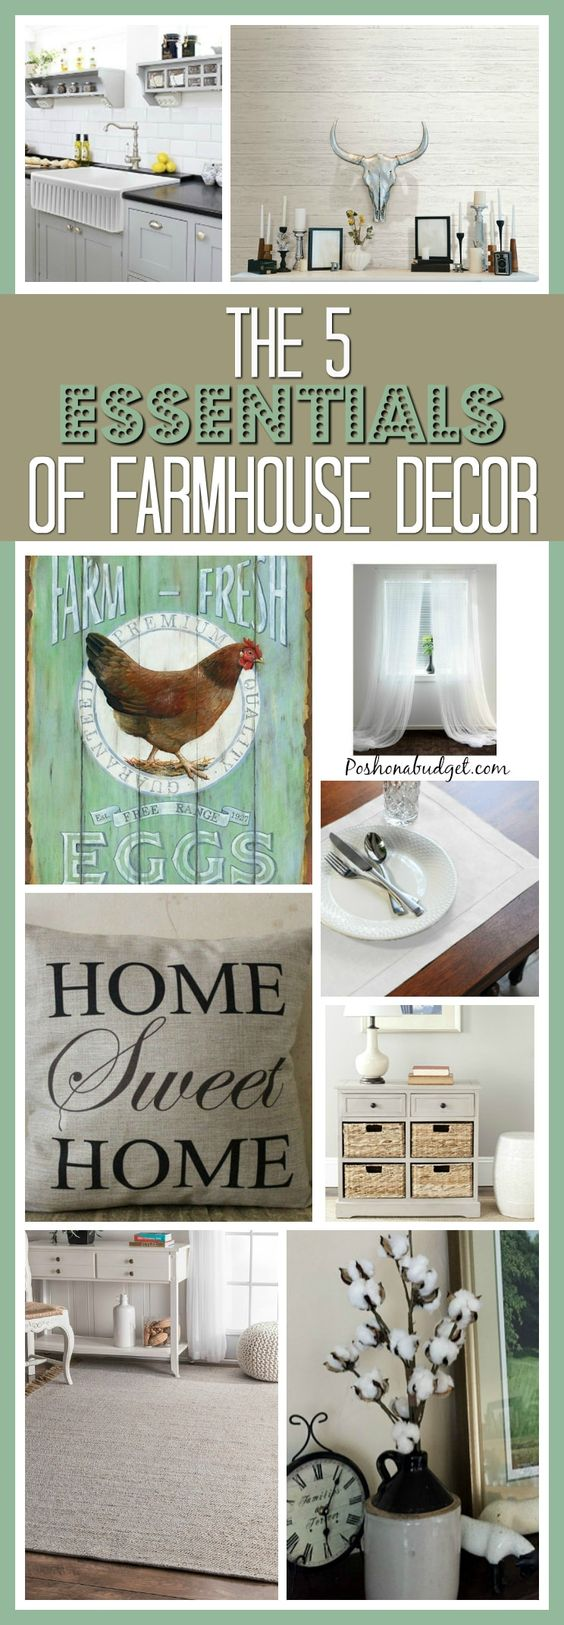 The 5 Essentials of Farmhouse Decor